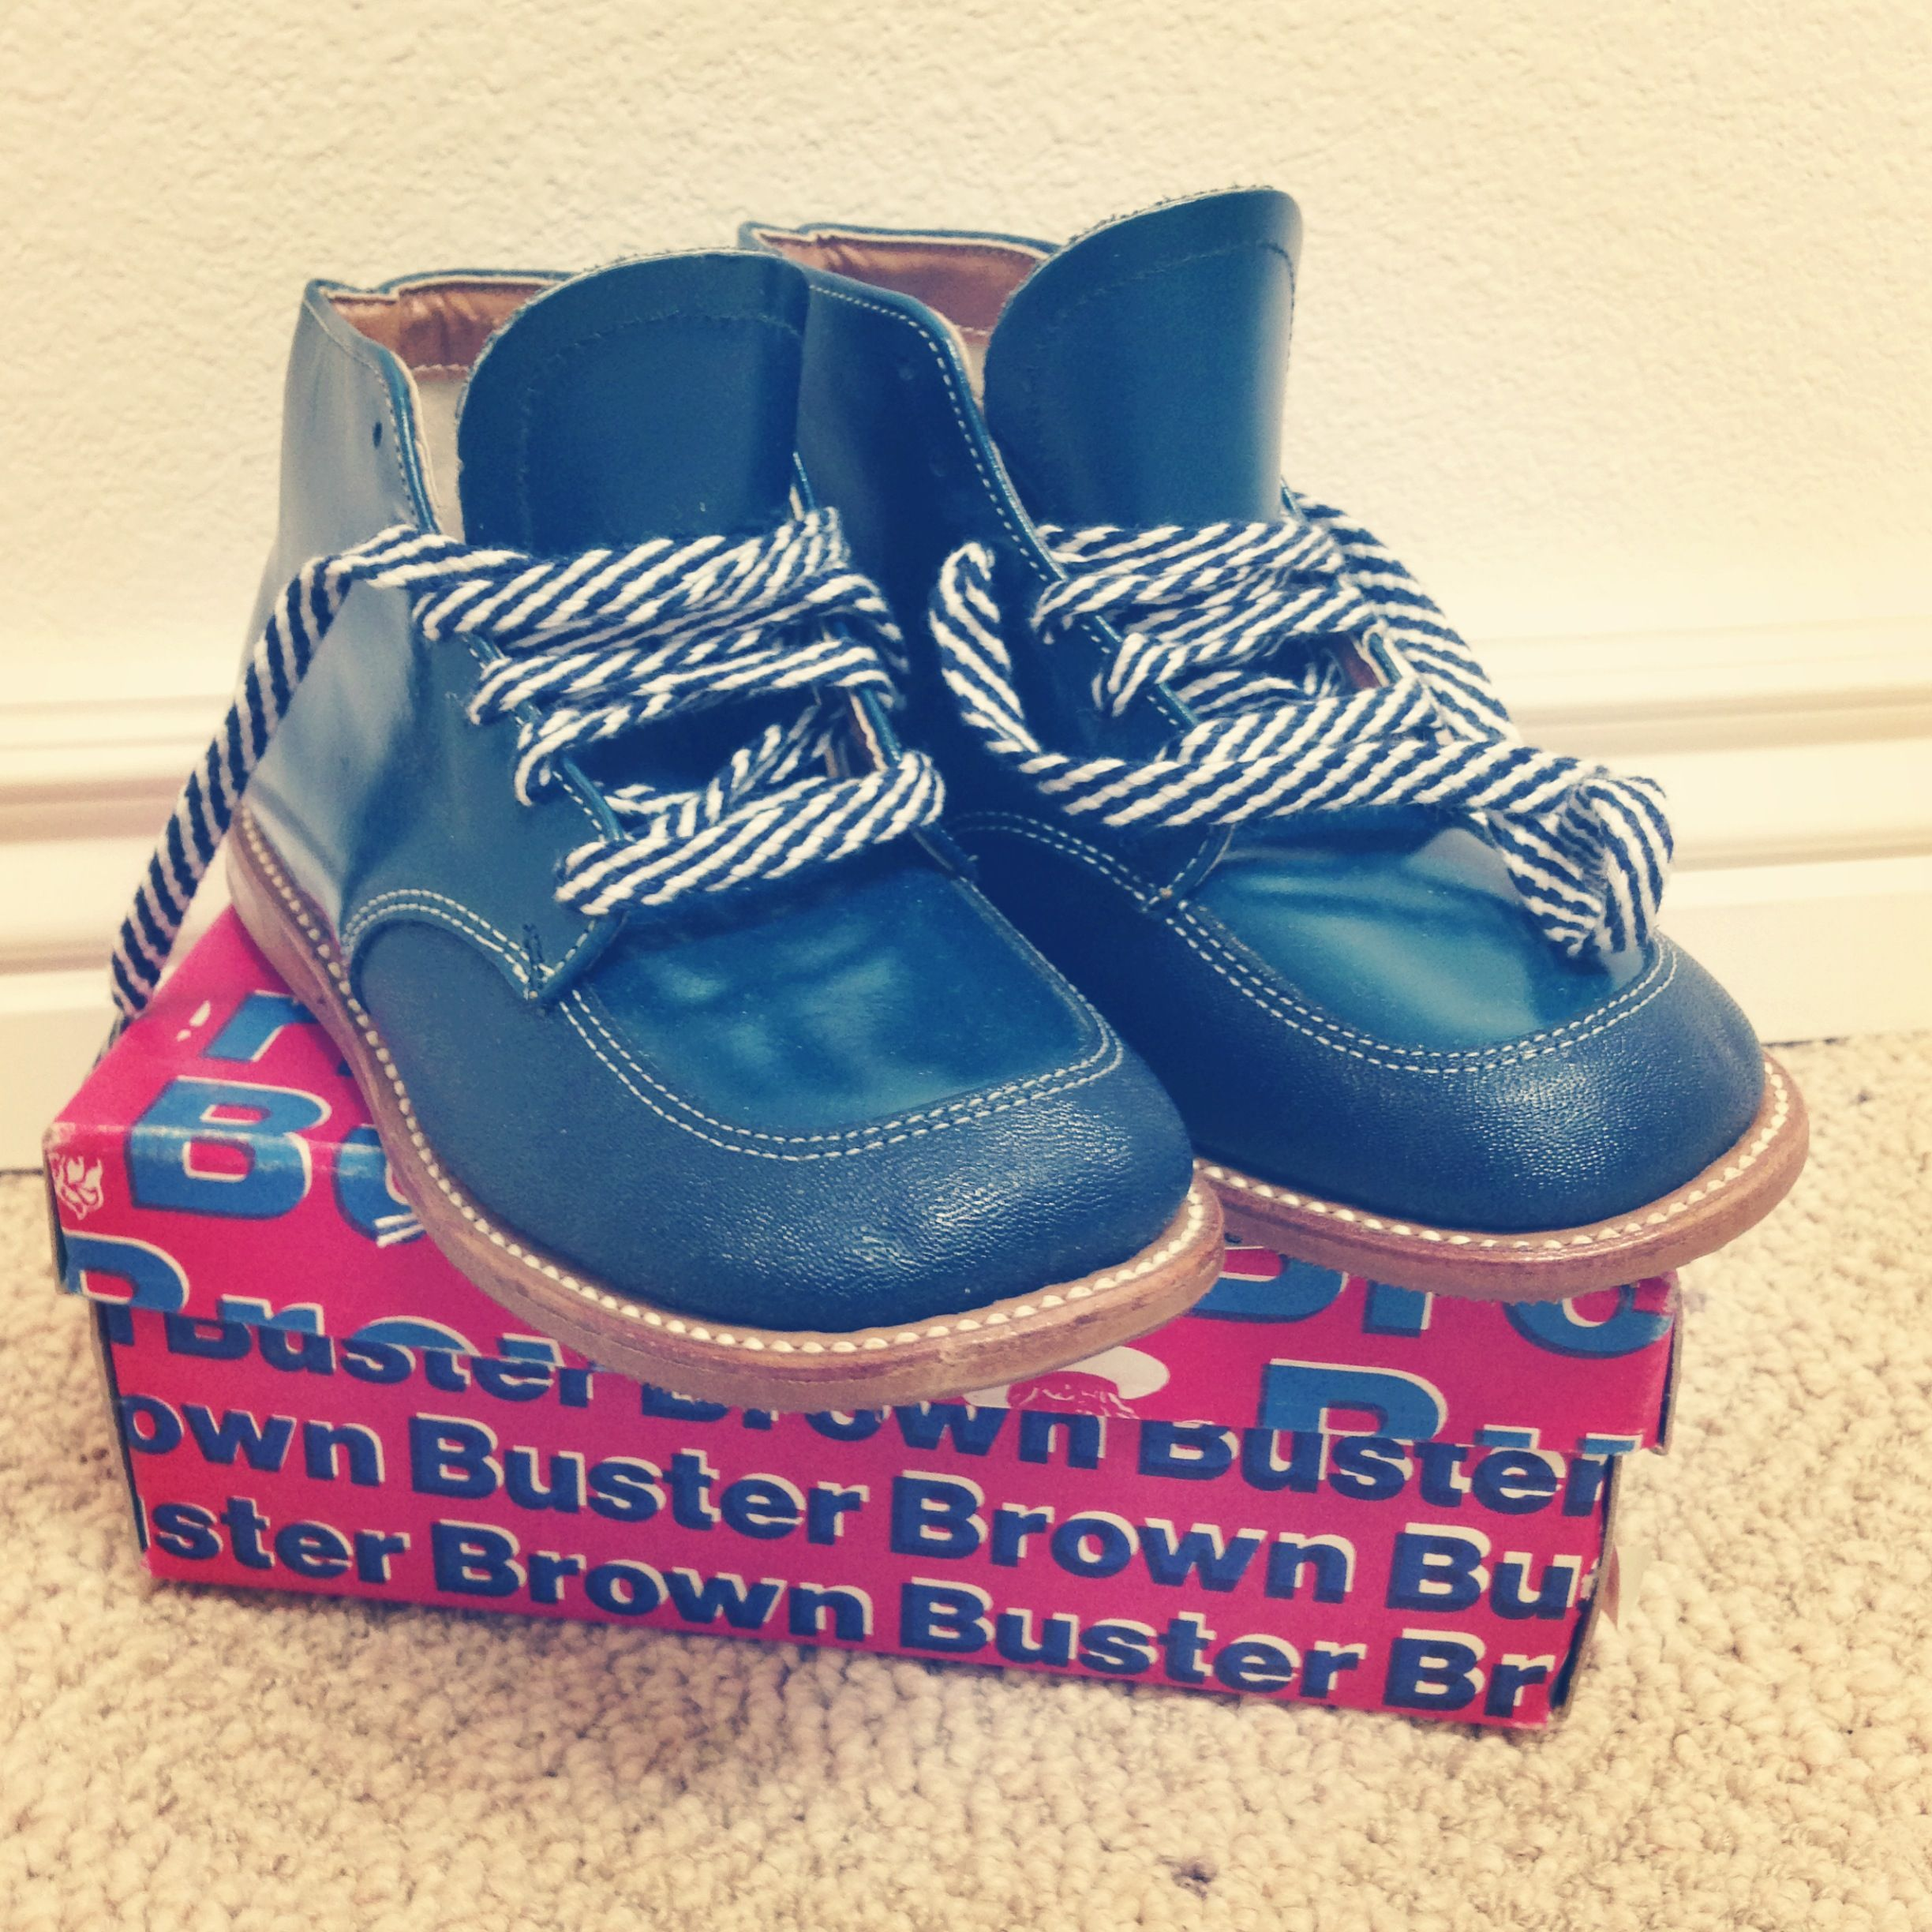 ec51fdabc8c5b Vintage Buster Brown Baby Shoes,,,my son wore these | oldies | Shoes ...